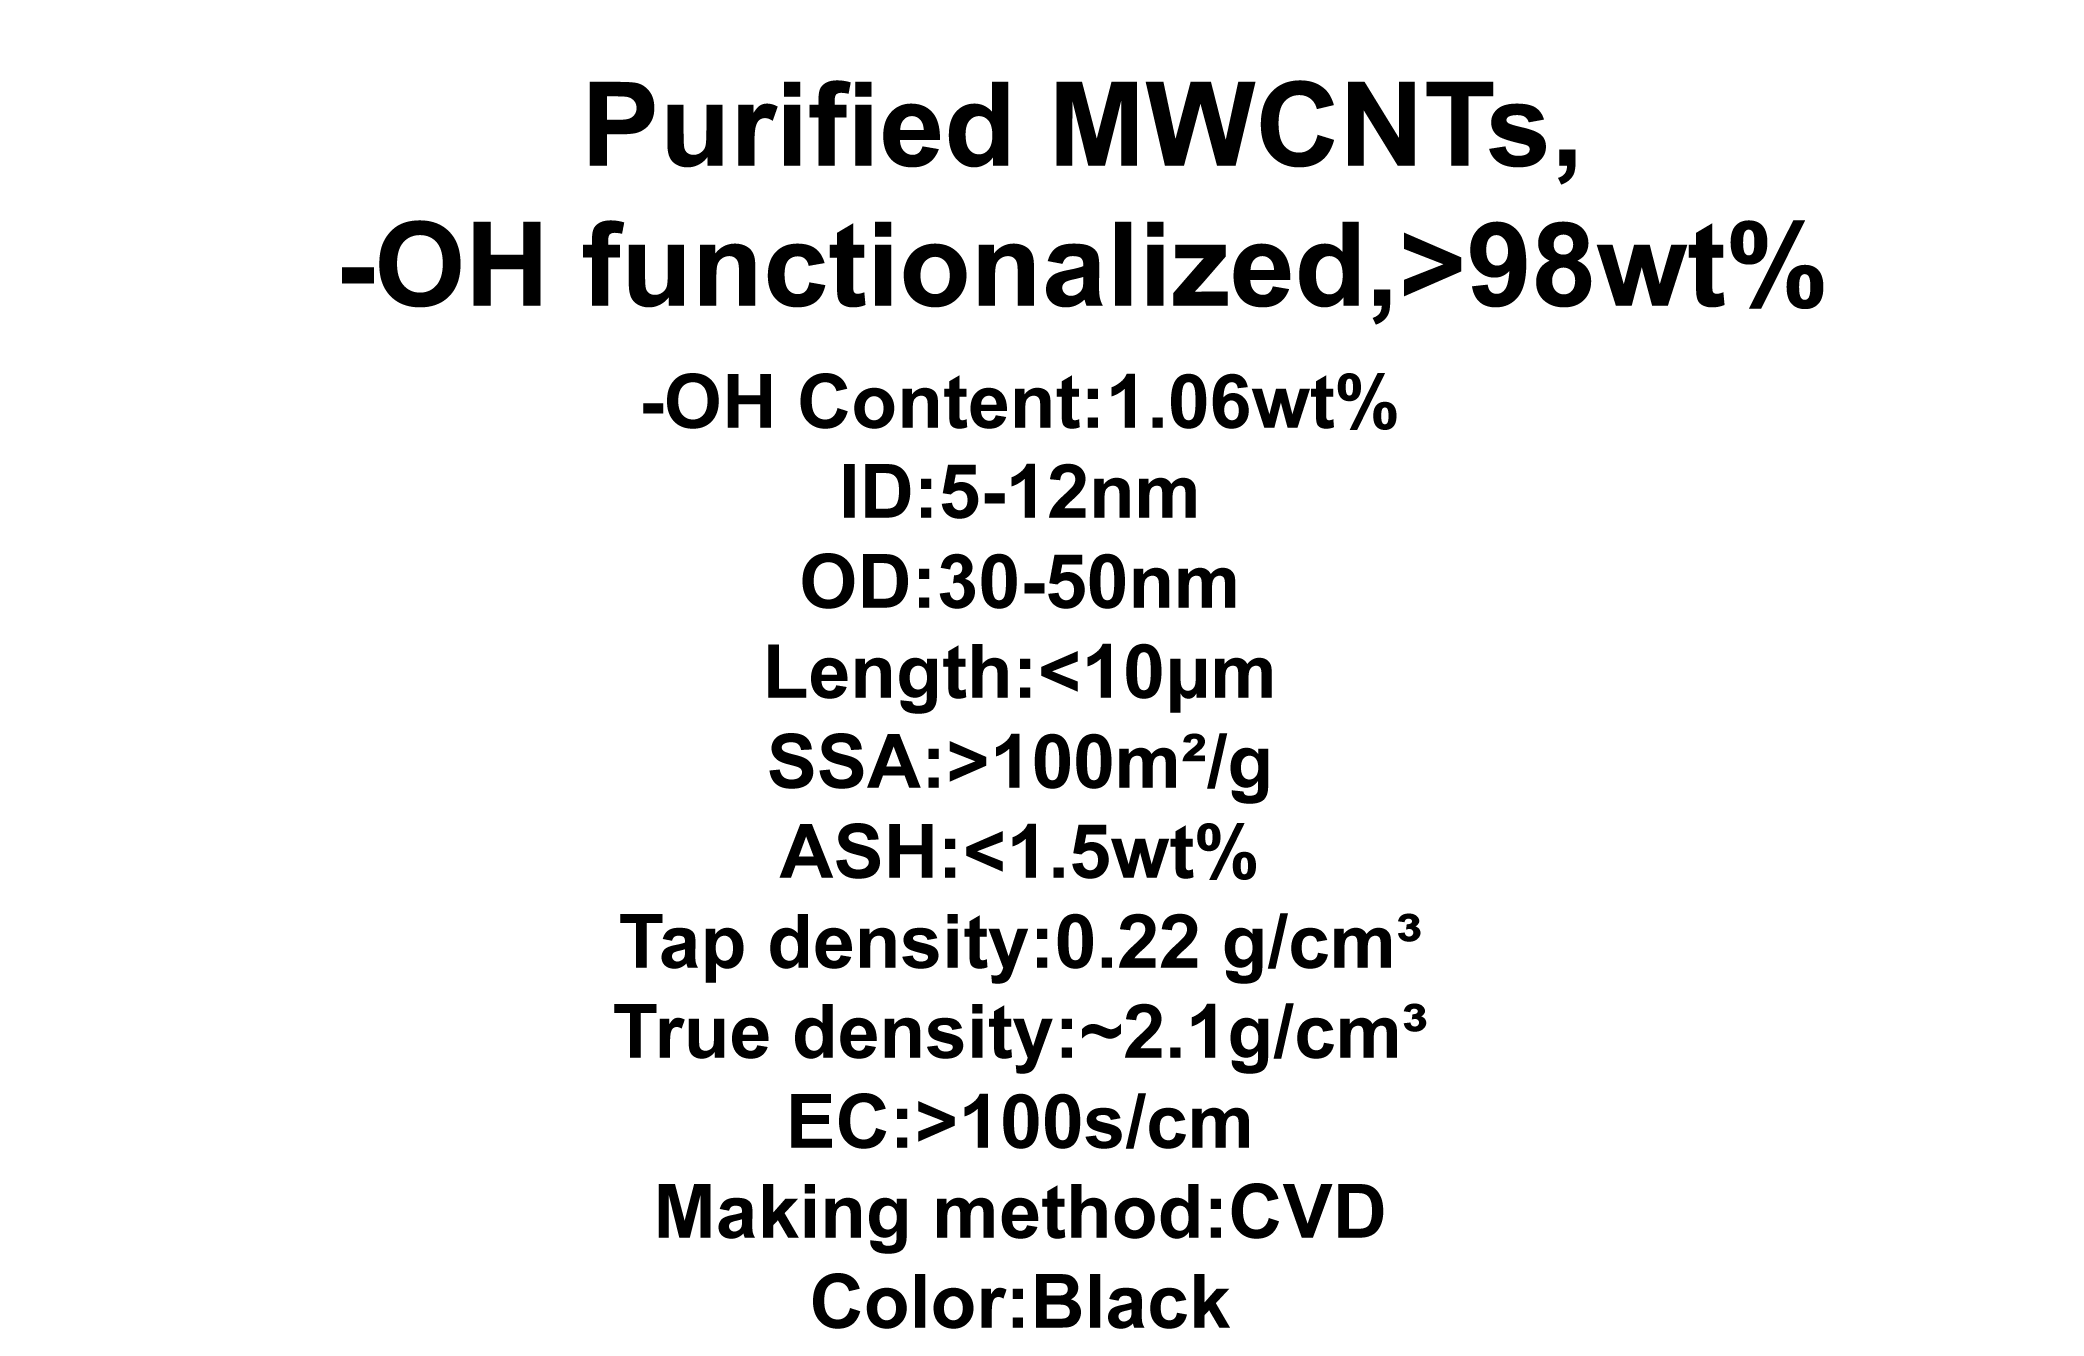 Purified MWCNTs, -OH functionalized (TNMH7)